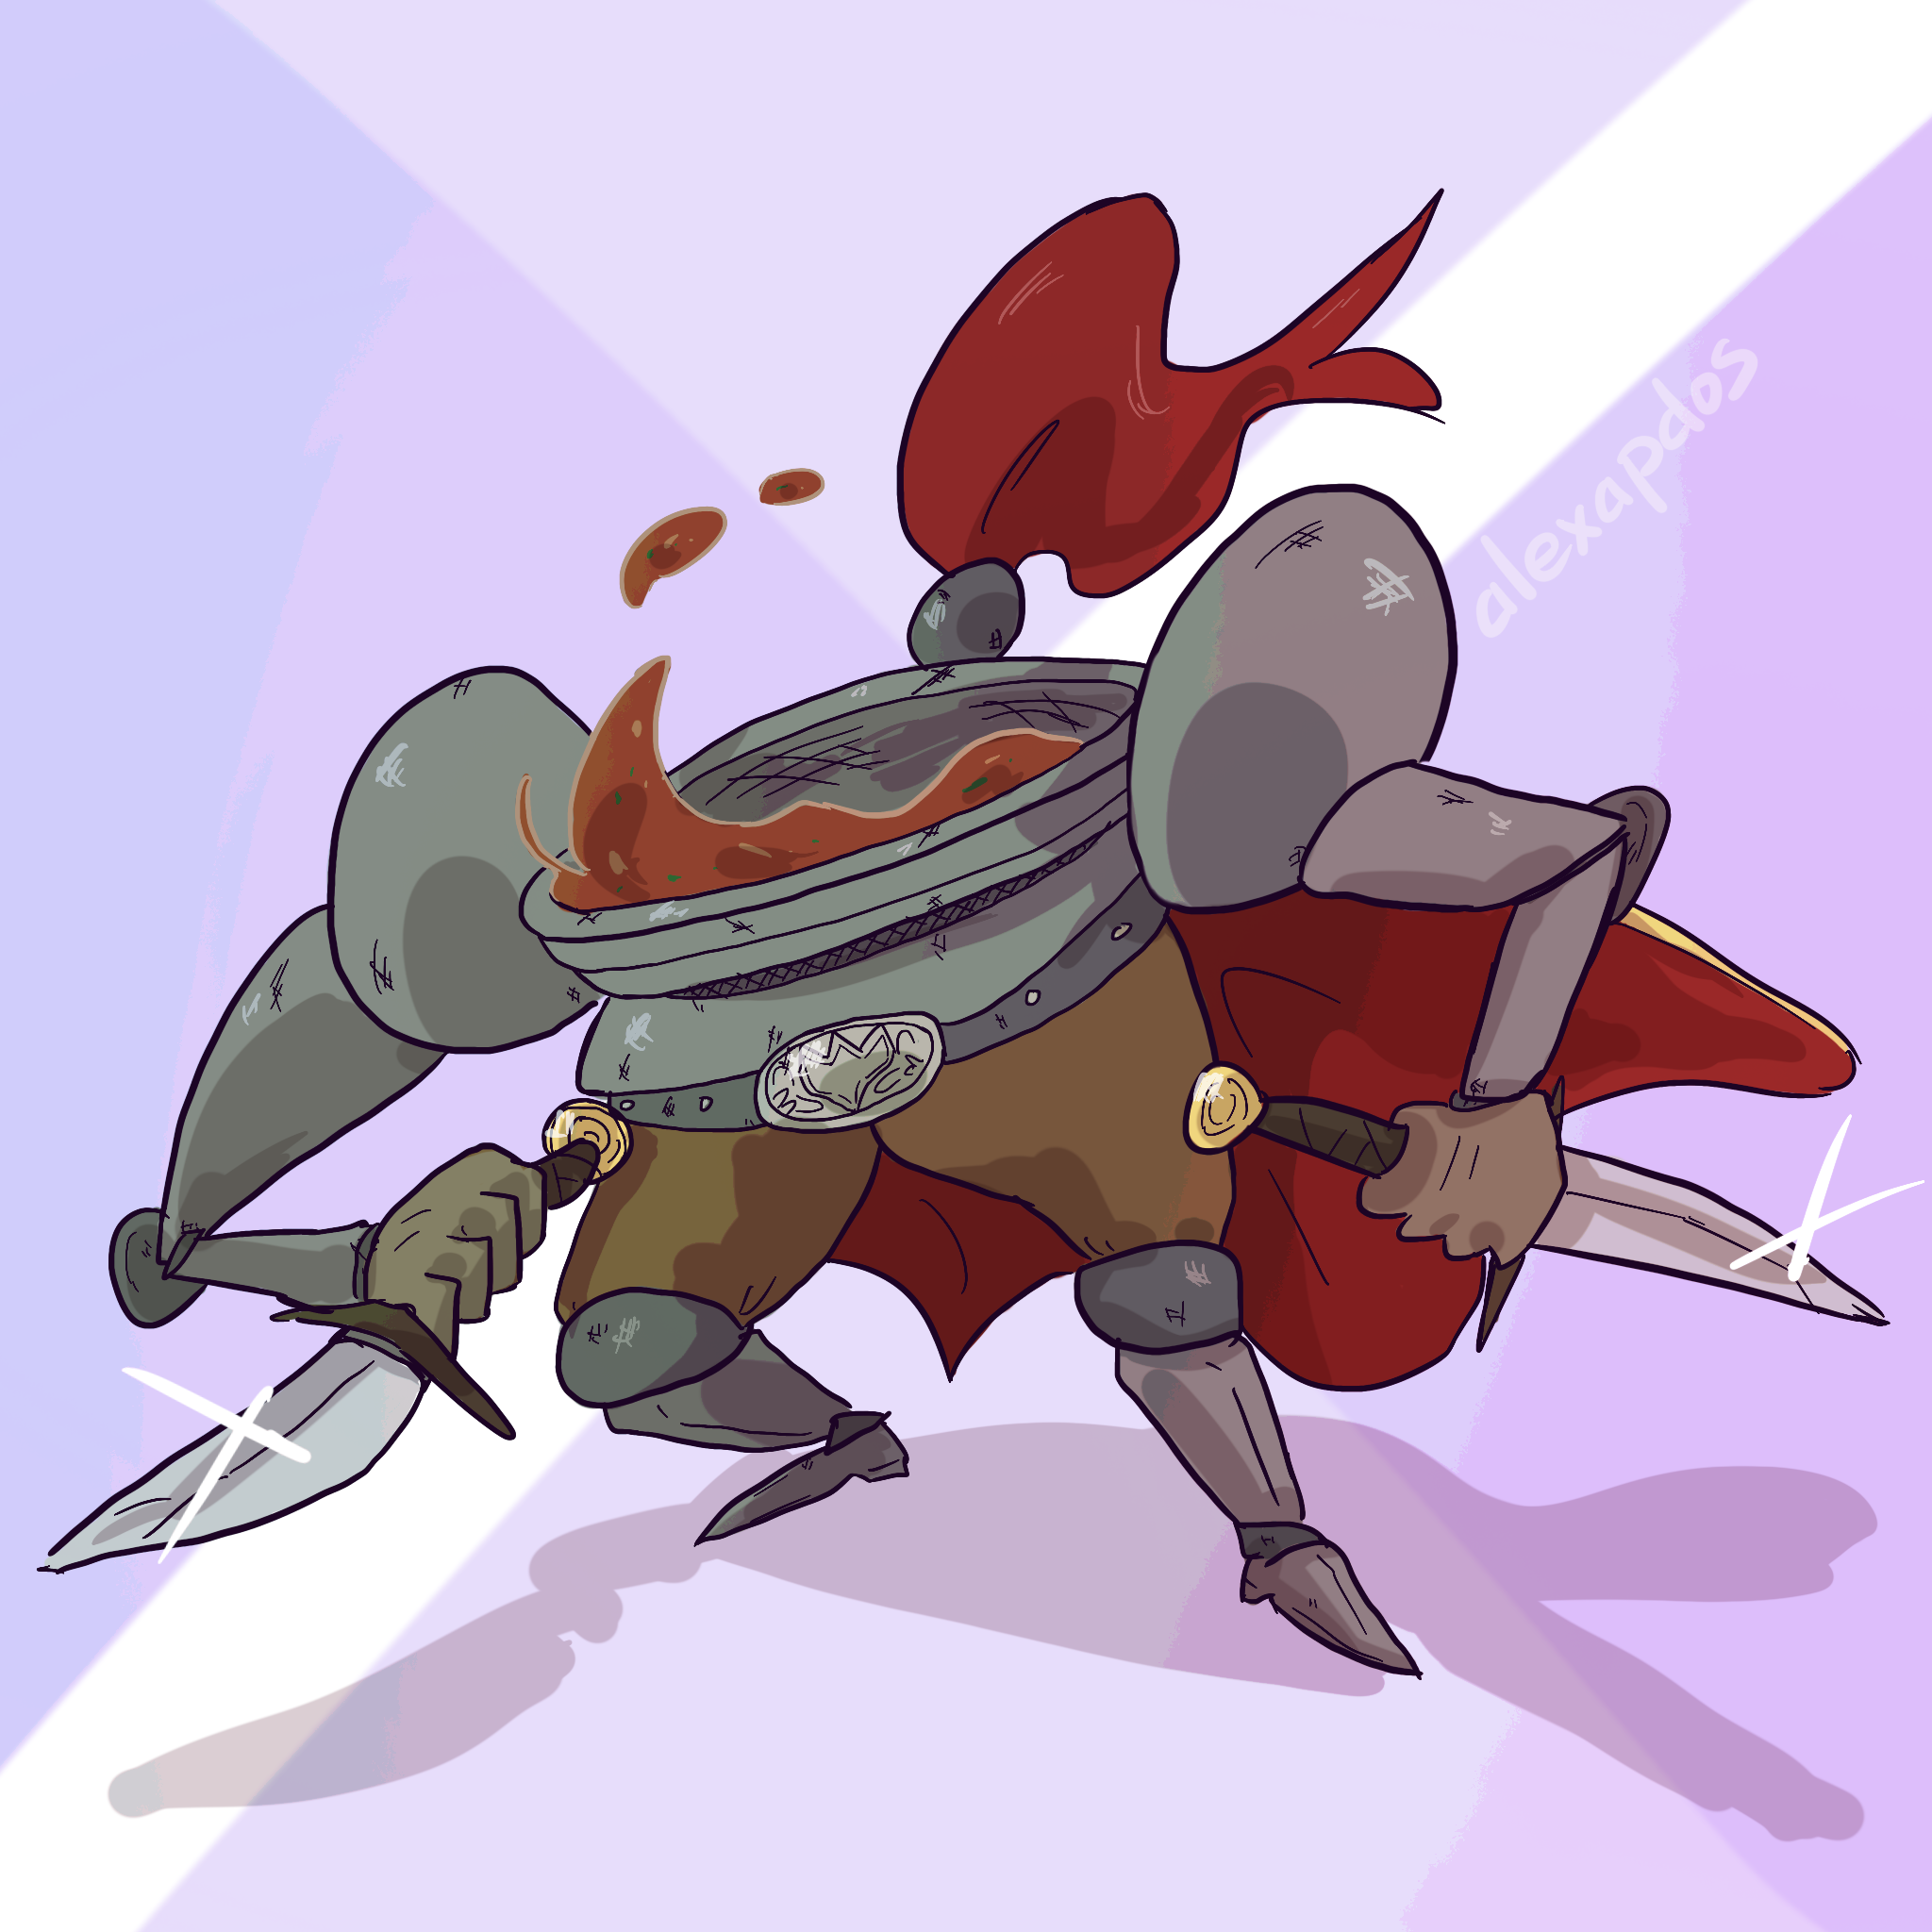 French onion soup knight